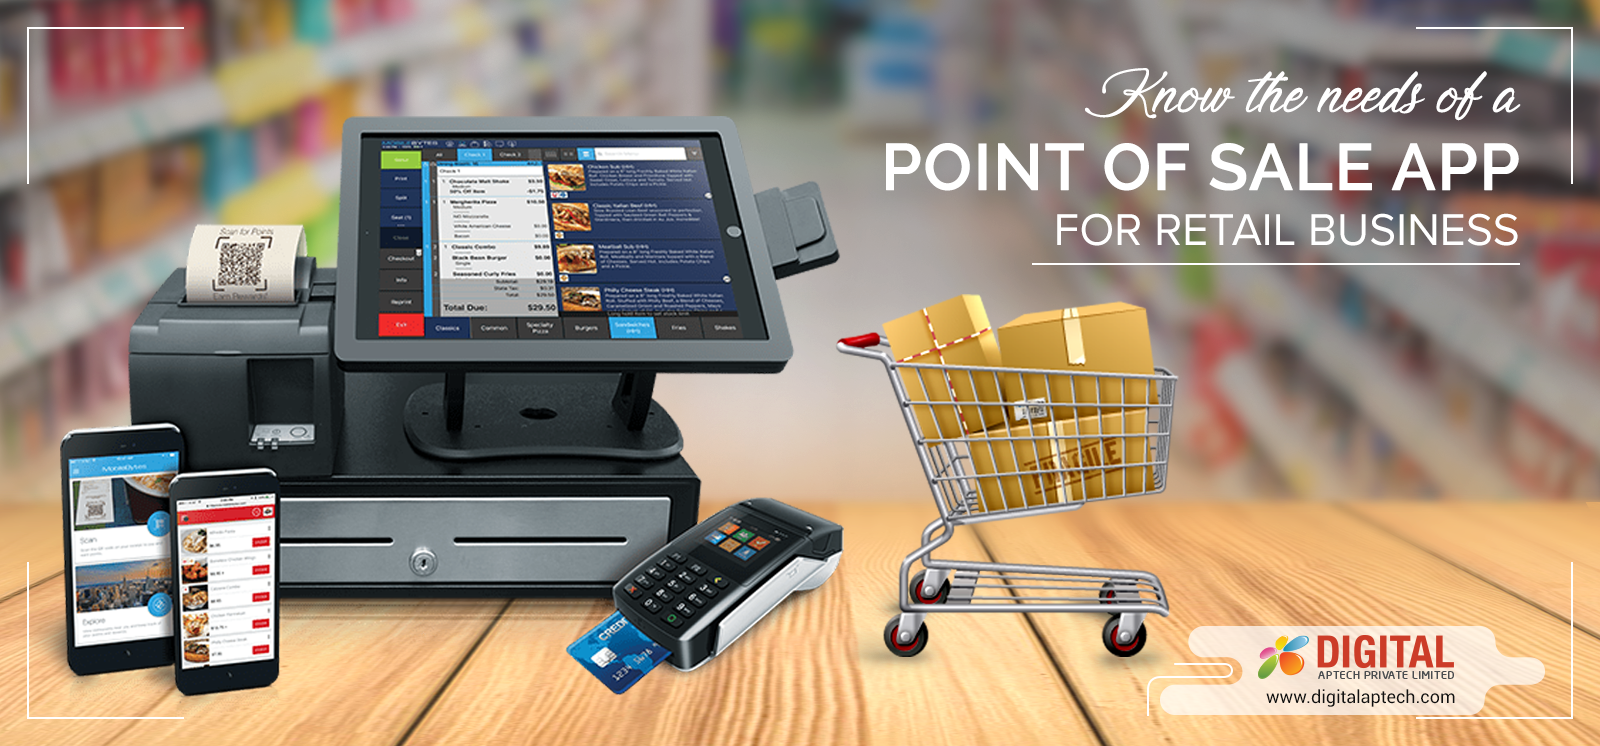 Why You Need a Point of Sale App for Your Retail Business?